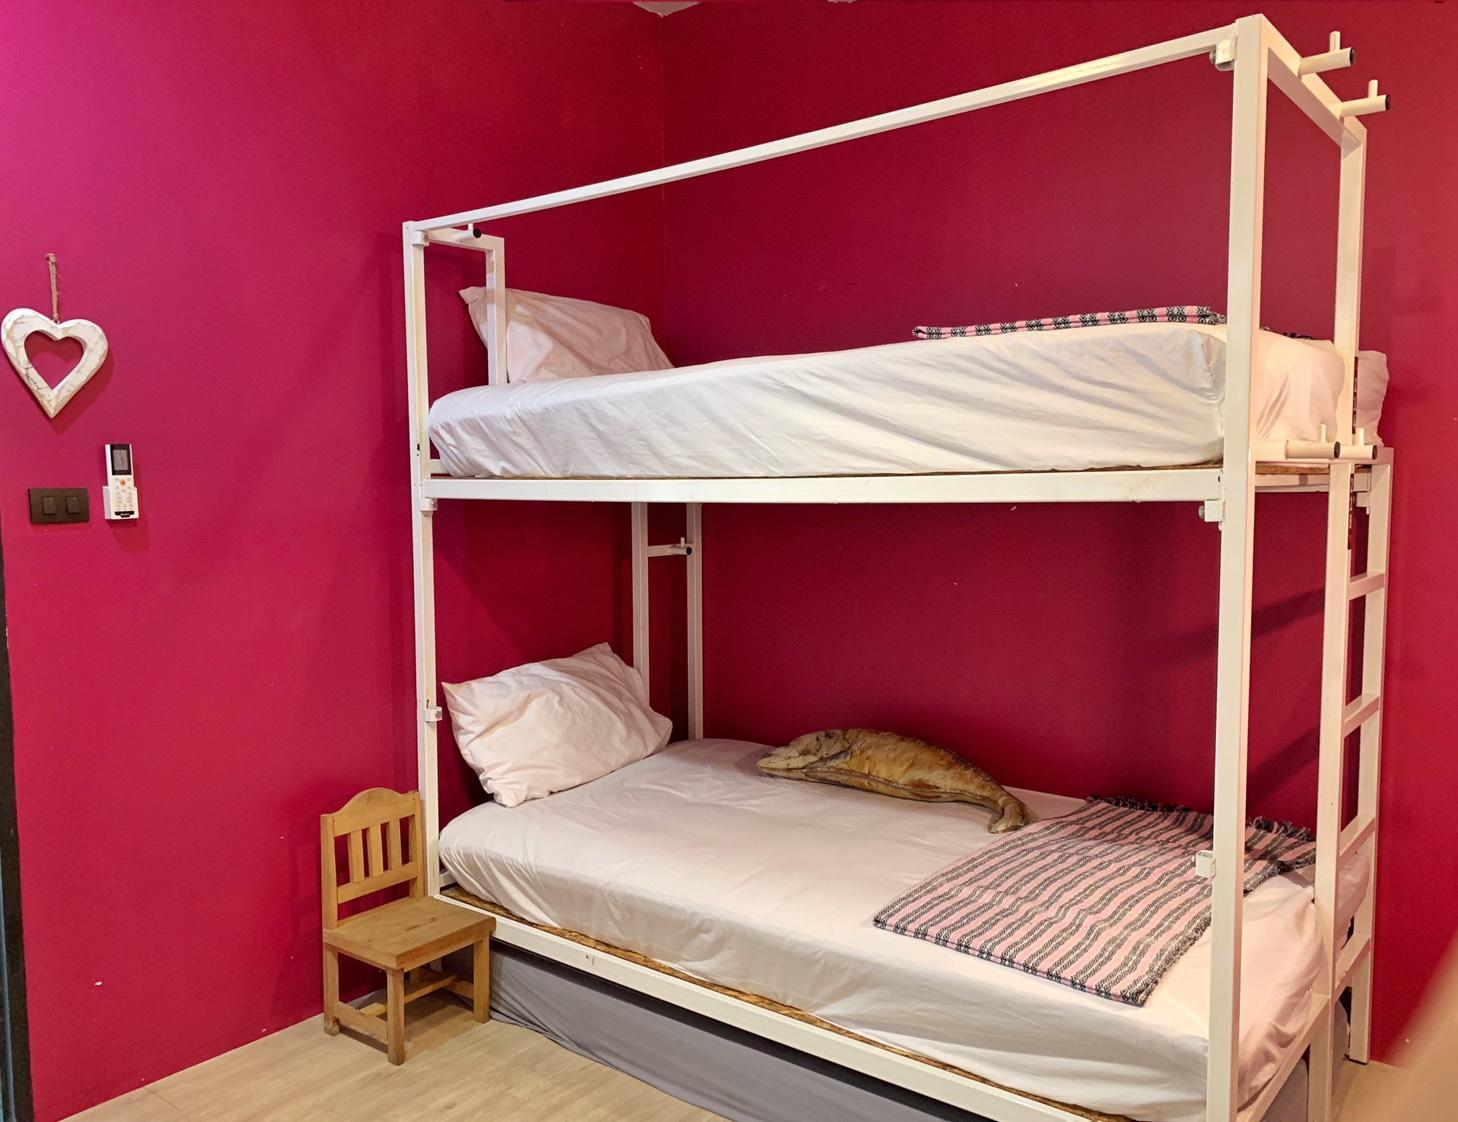 Camera Privata con Letto a Castello (Private Room with Bunk Bed)